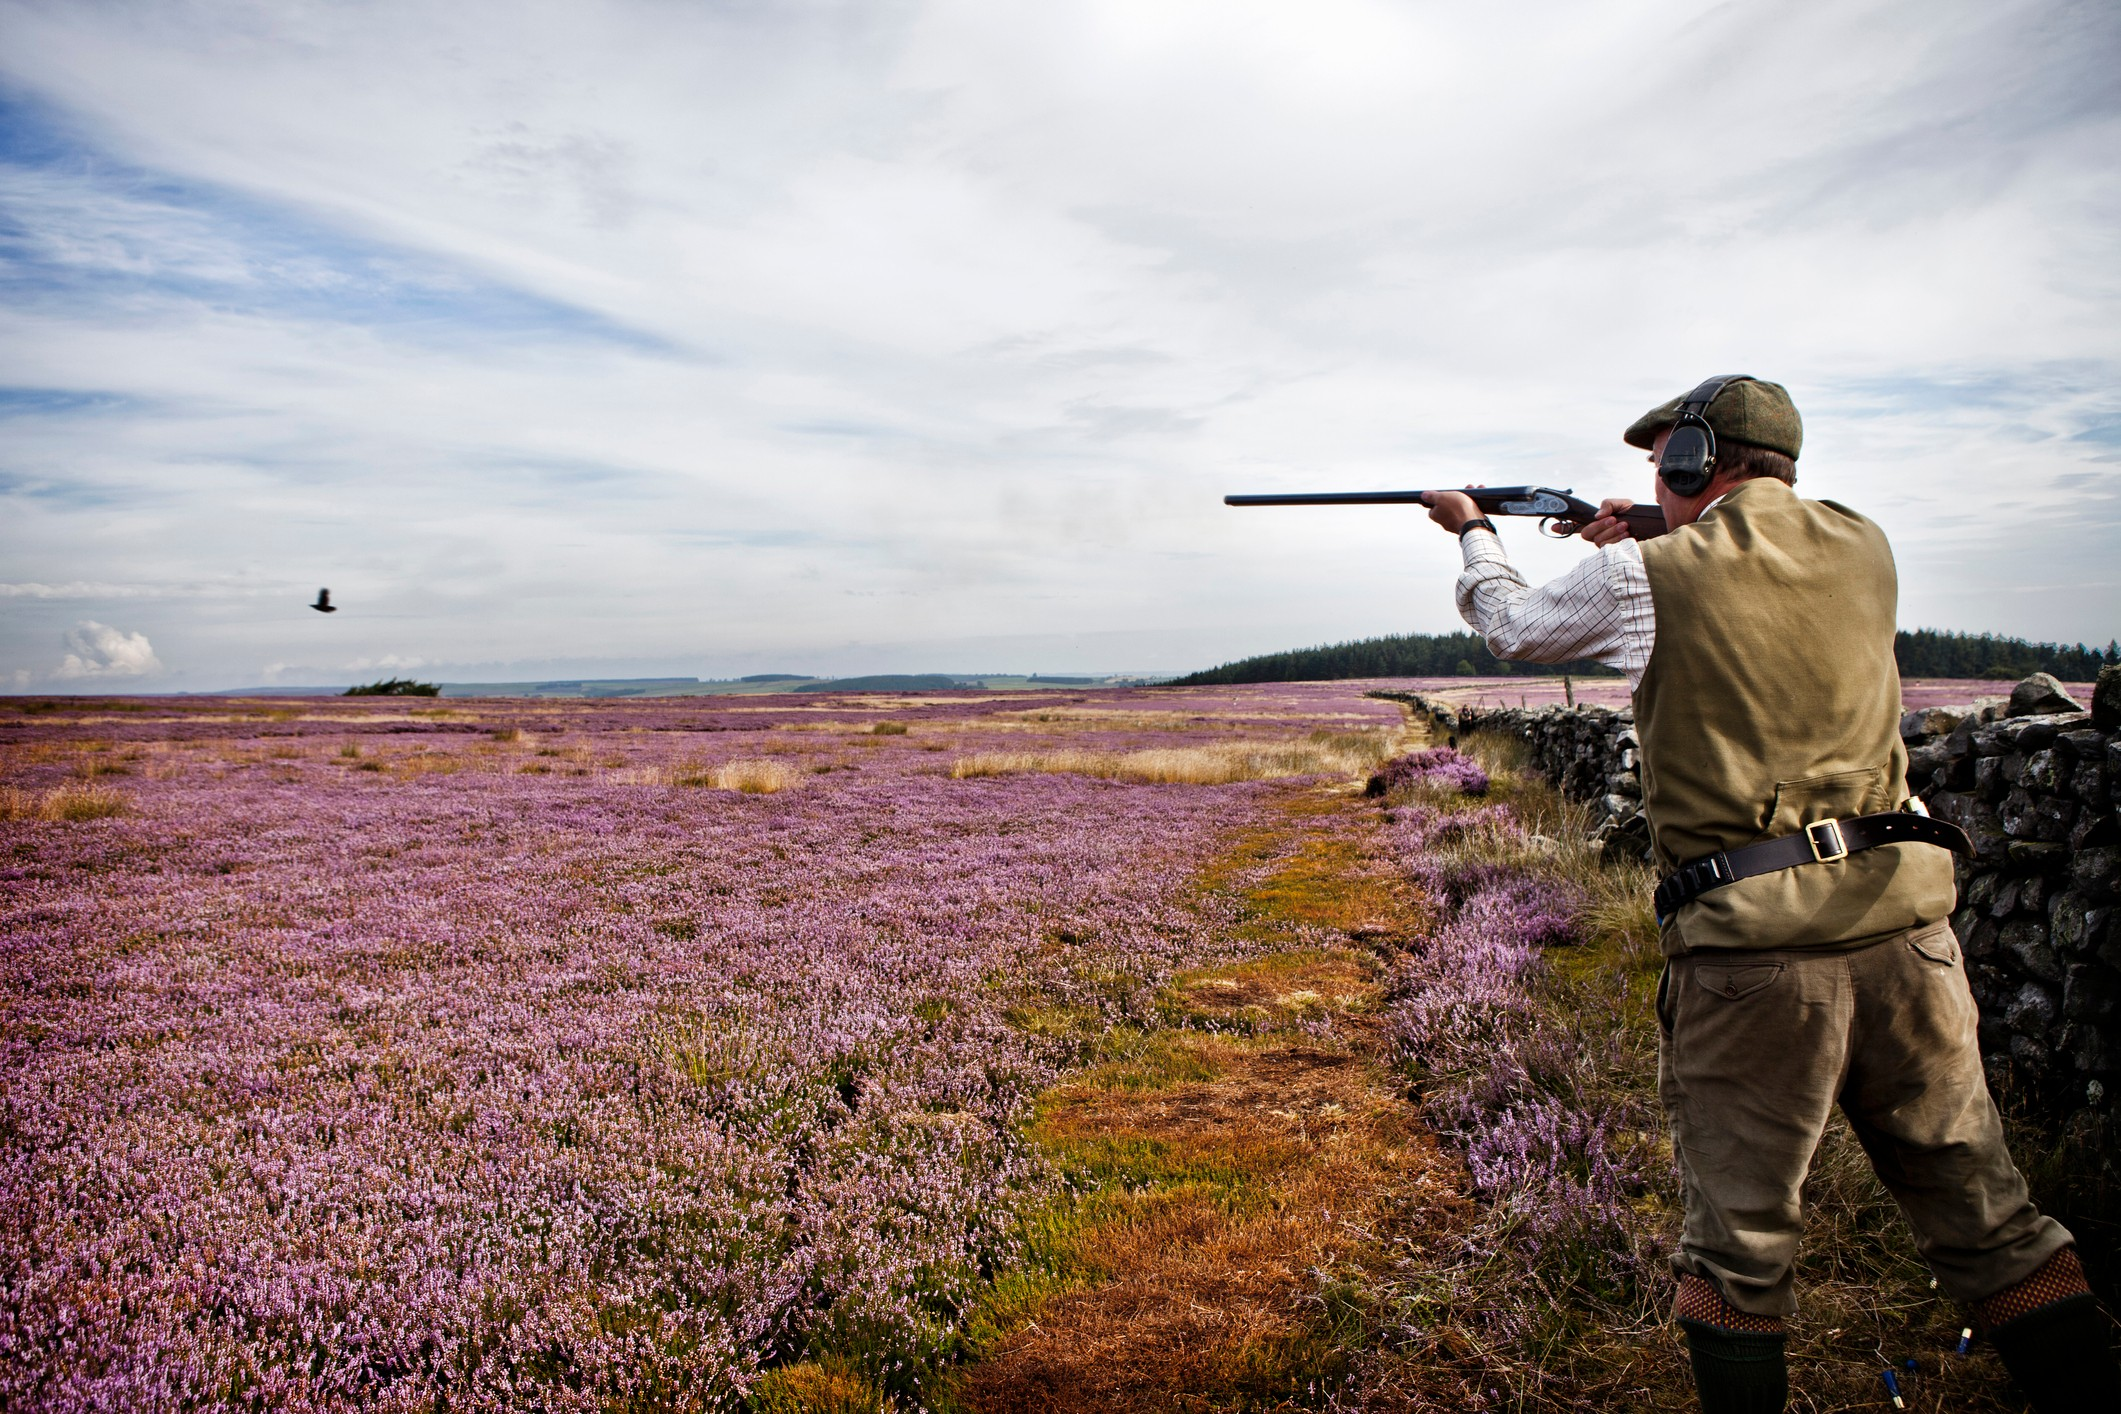 Man shooting birds in field of flowers